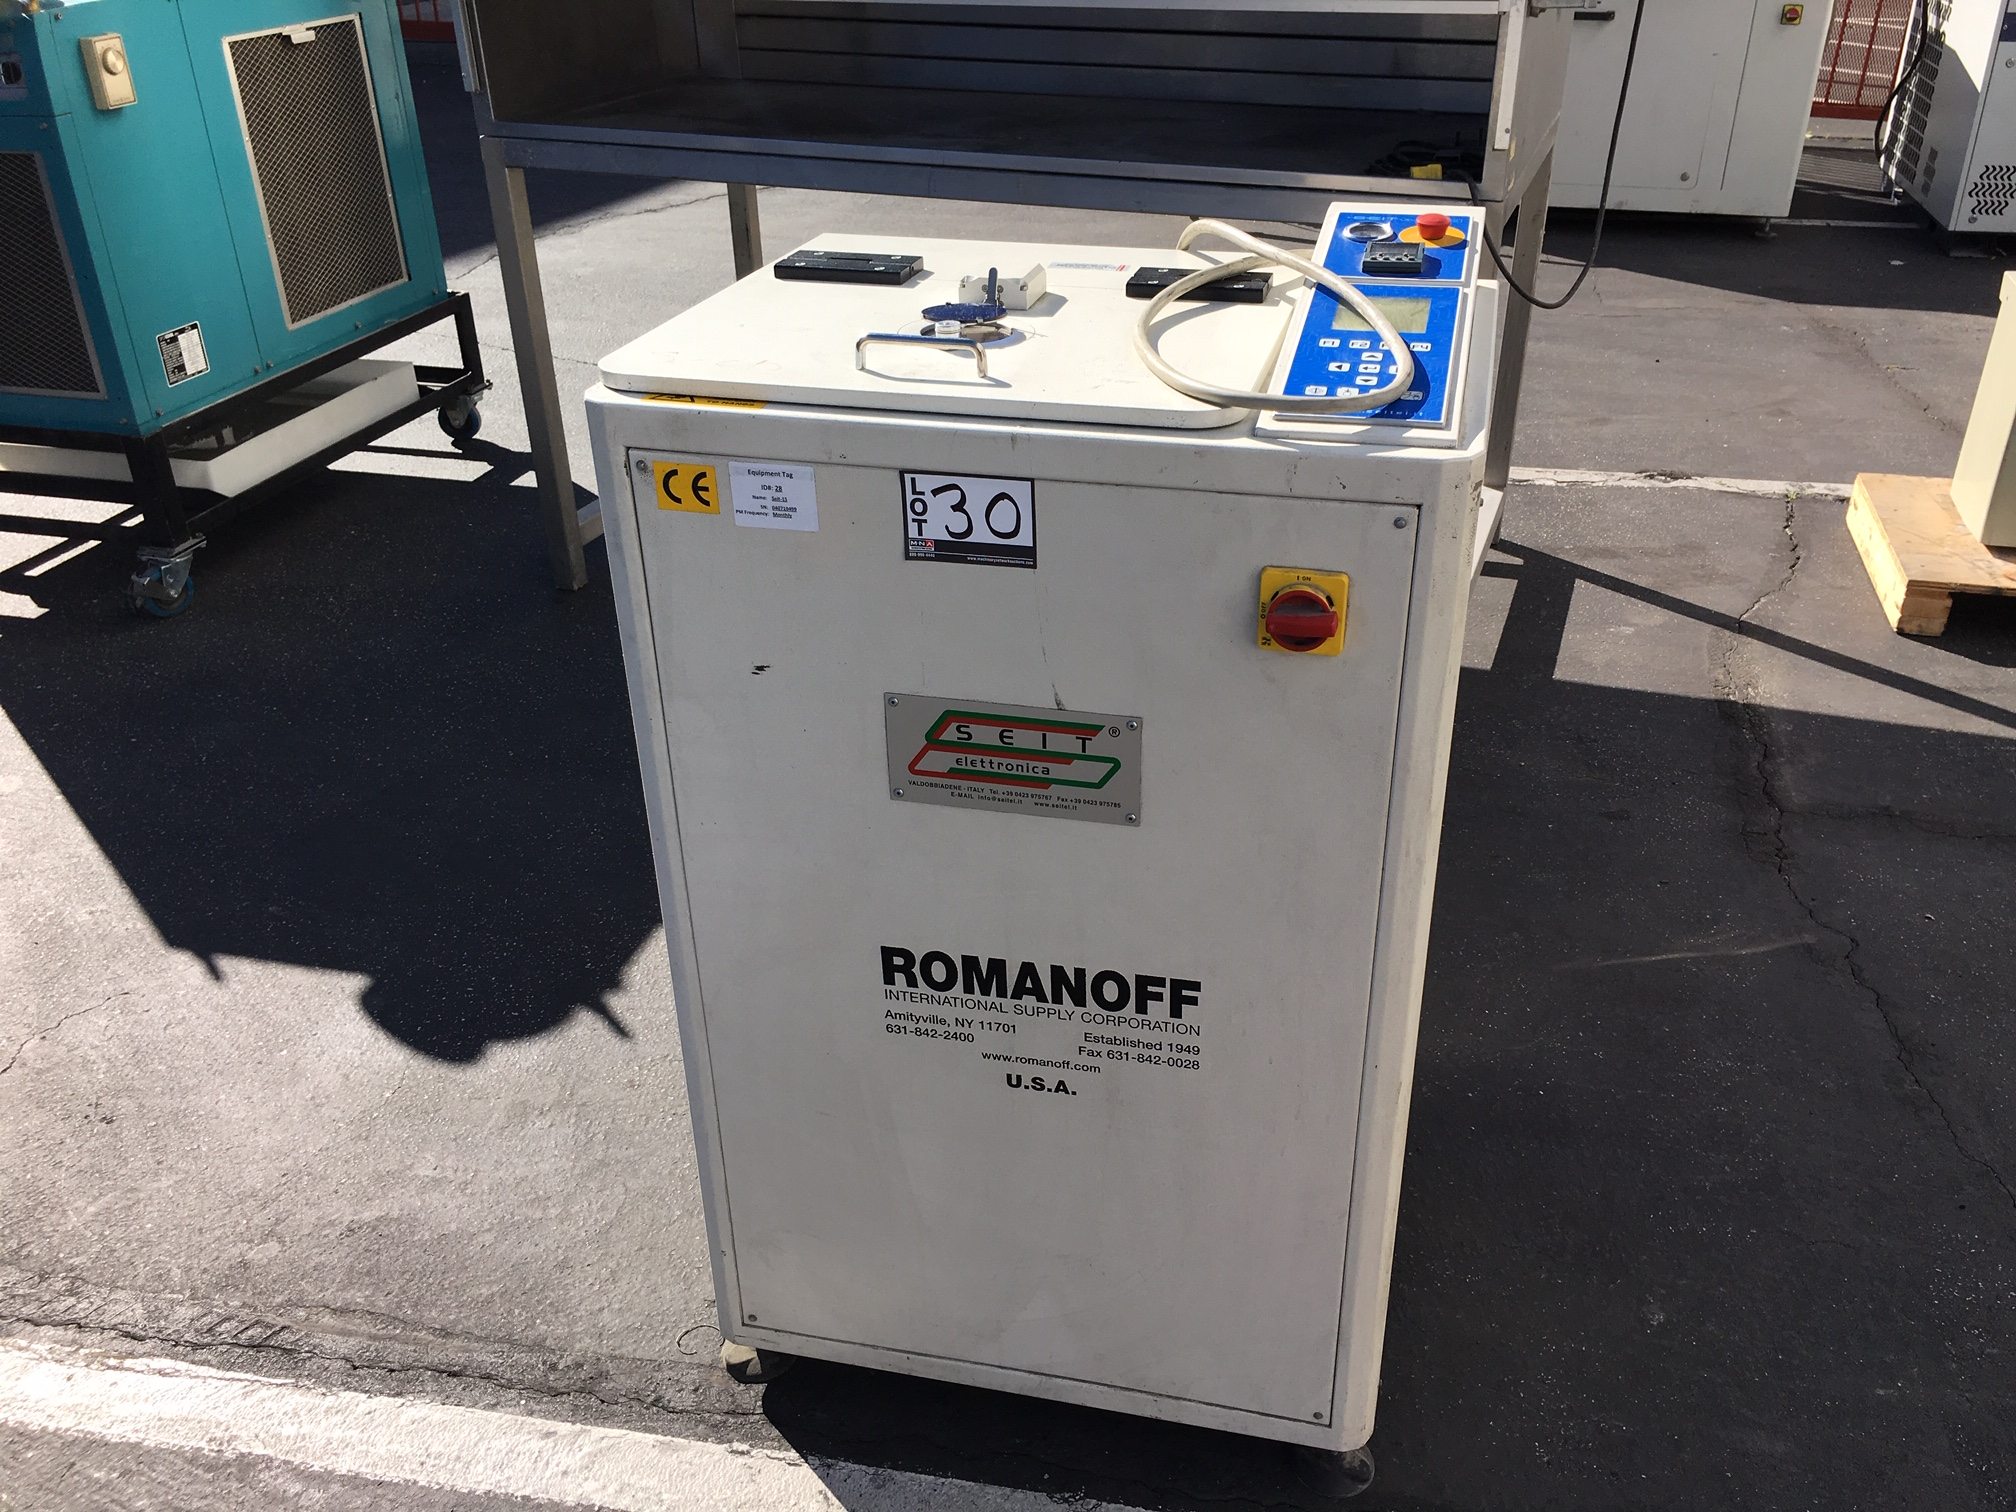 Lot 30 - Romanoff Supercast 2/O4KW Induction Melting Furnace, s/n 040710497, New 2007